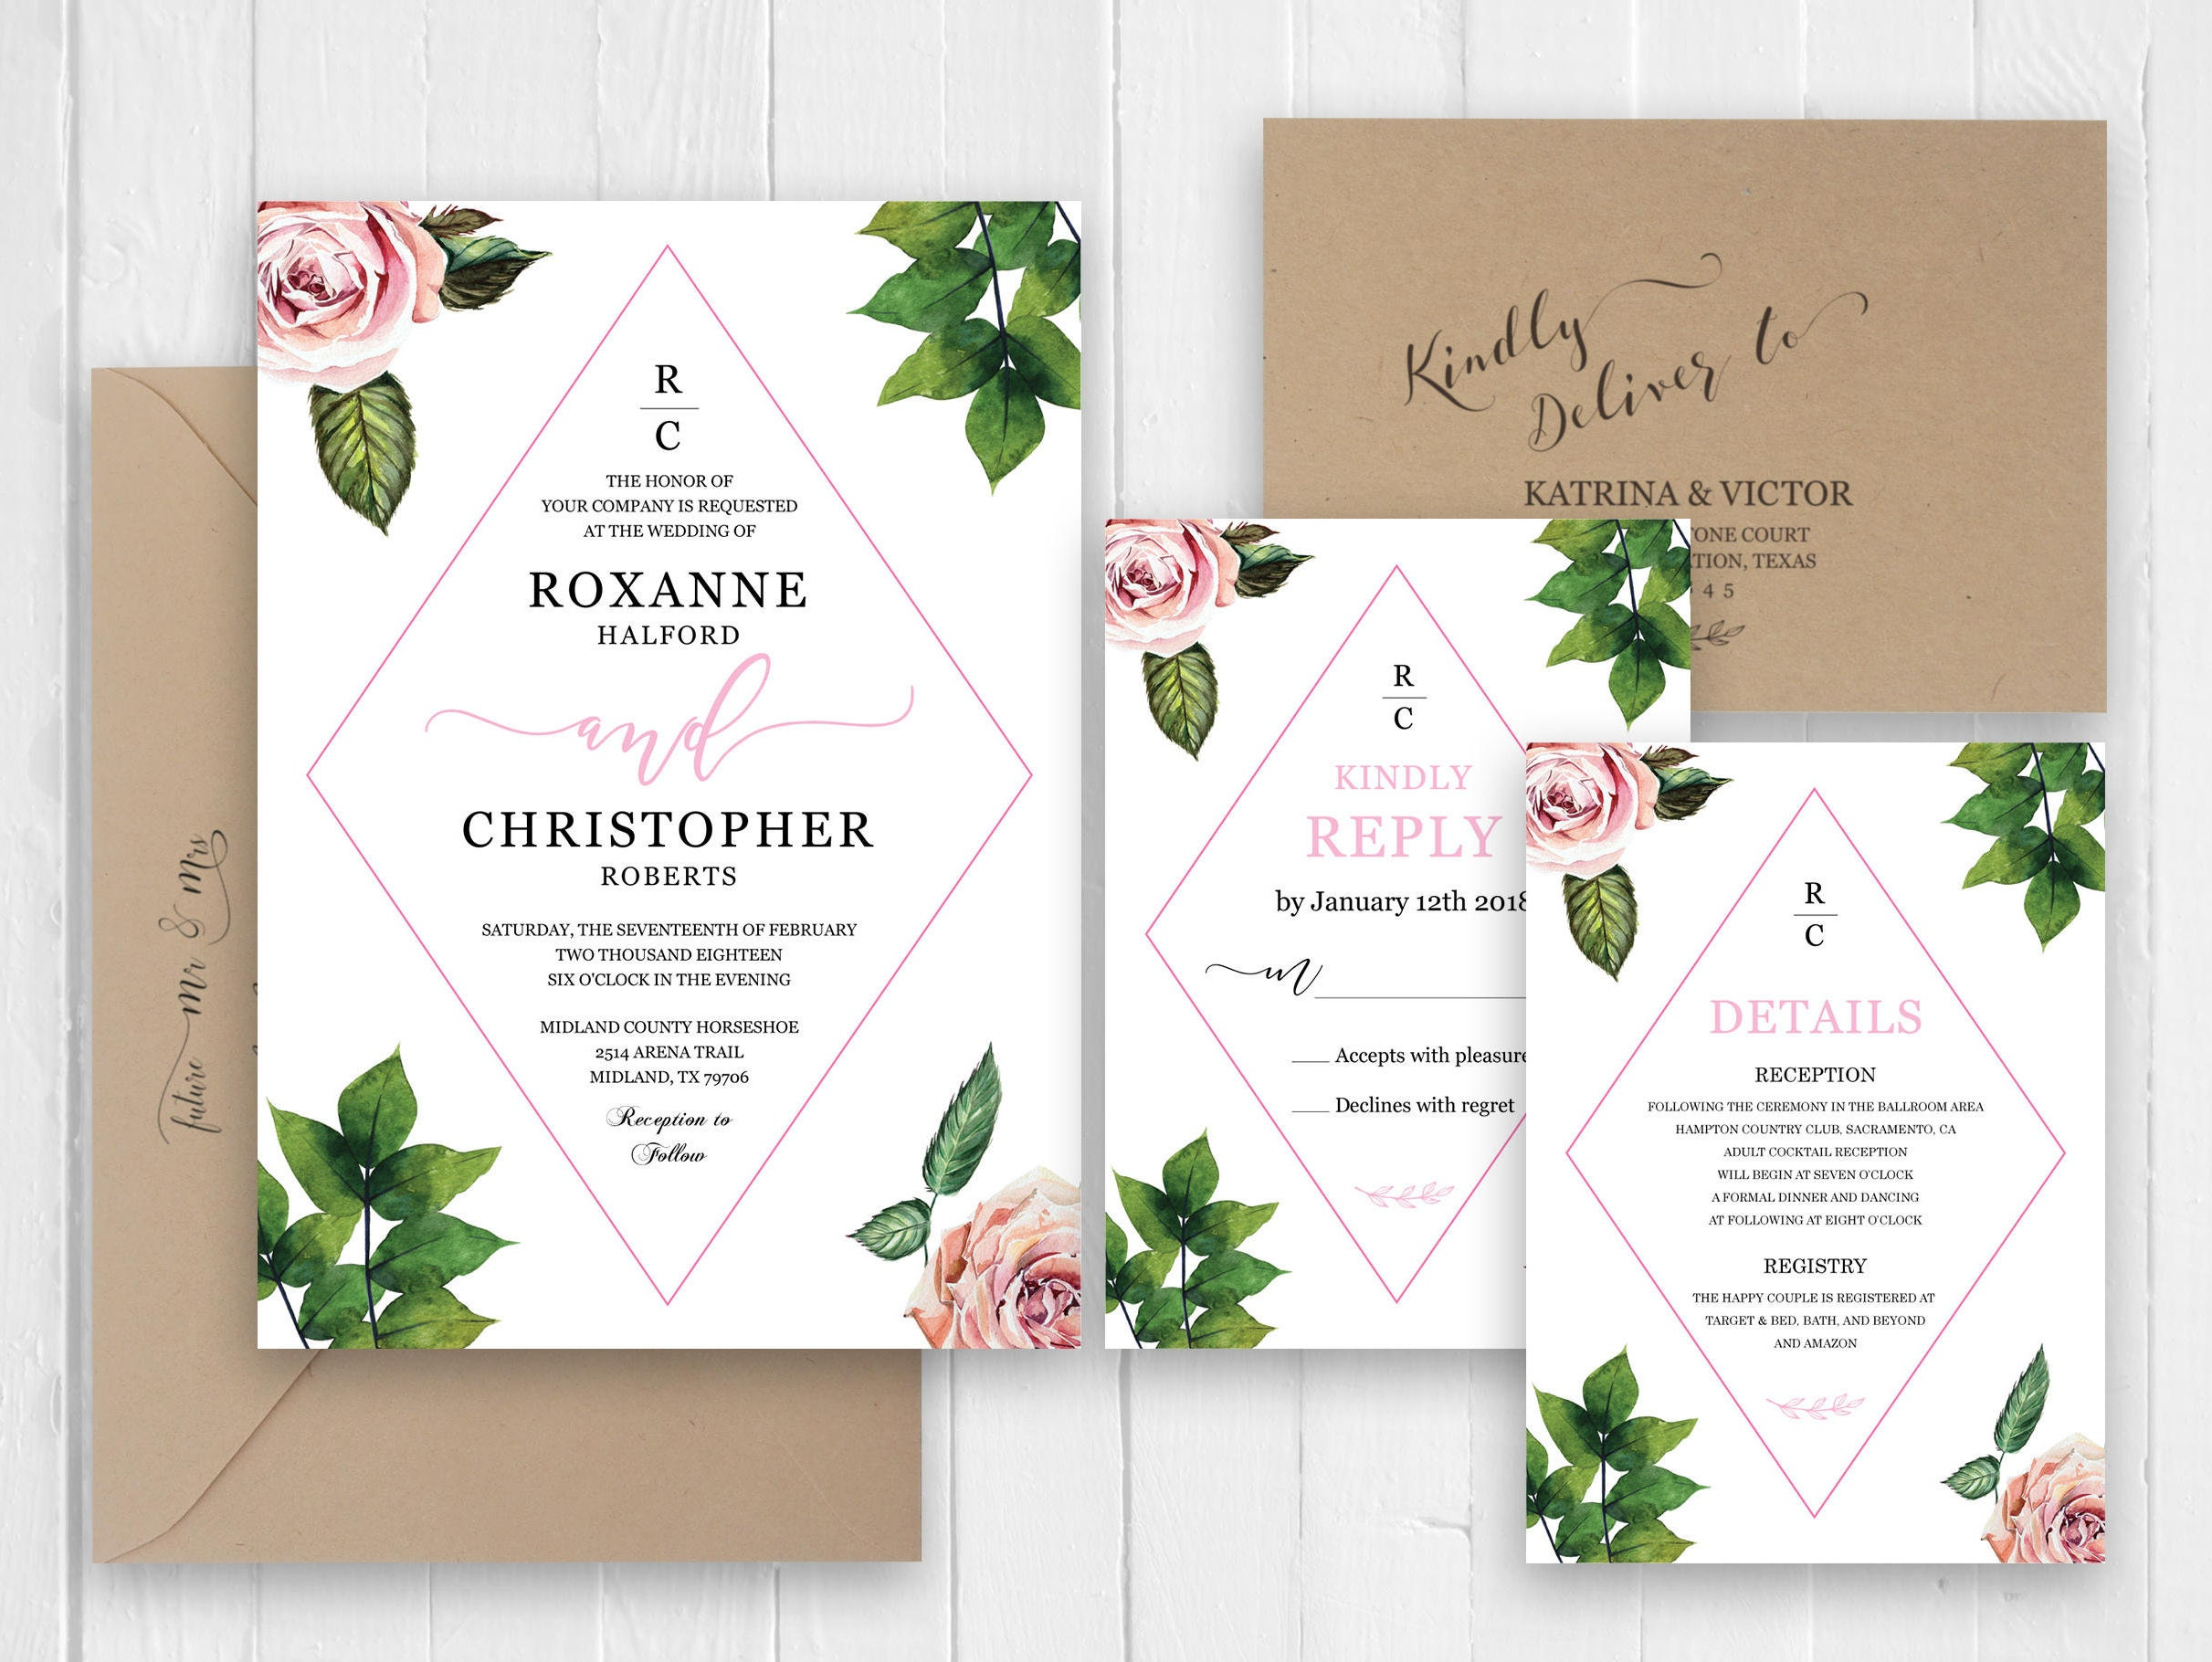 Pink Watercolor Roses Wedding Invitations RSVP Details Menu Elegant